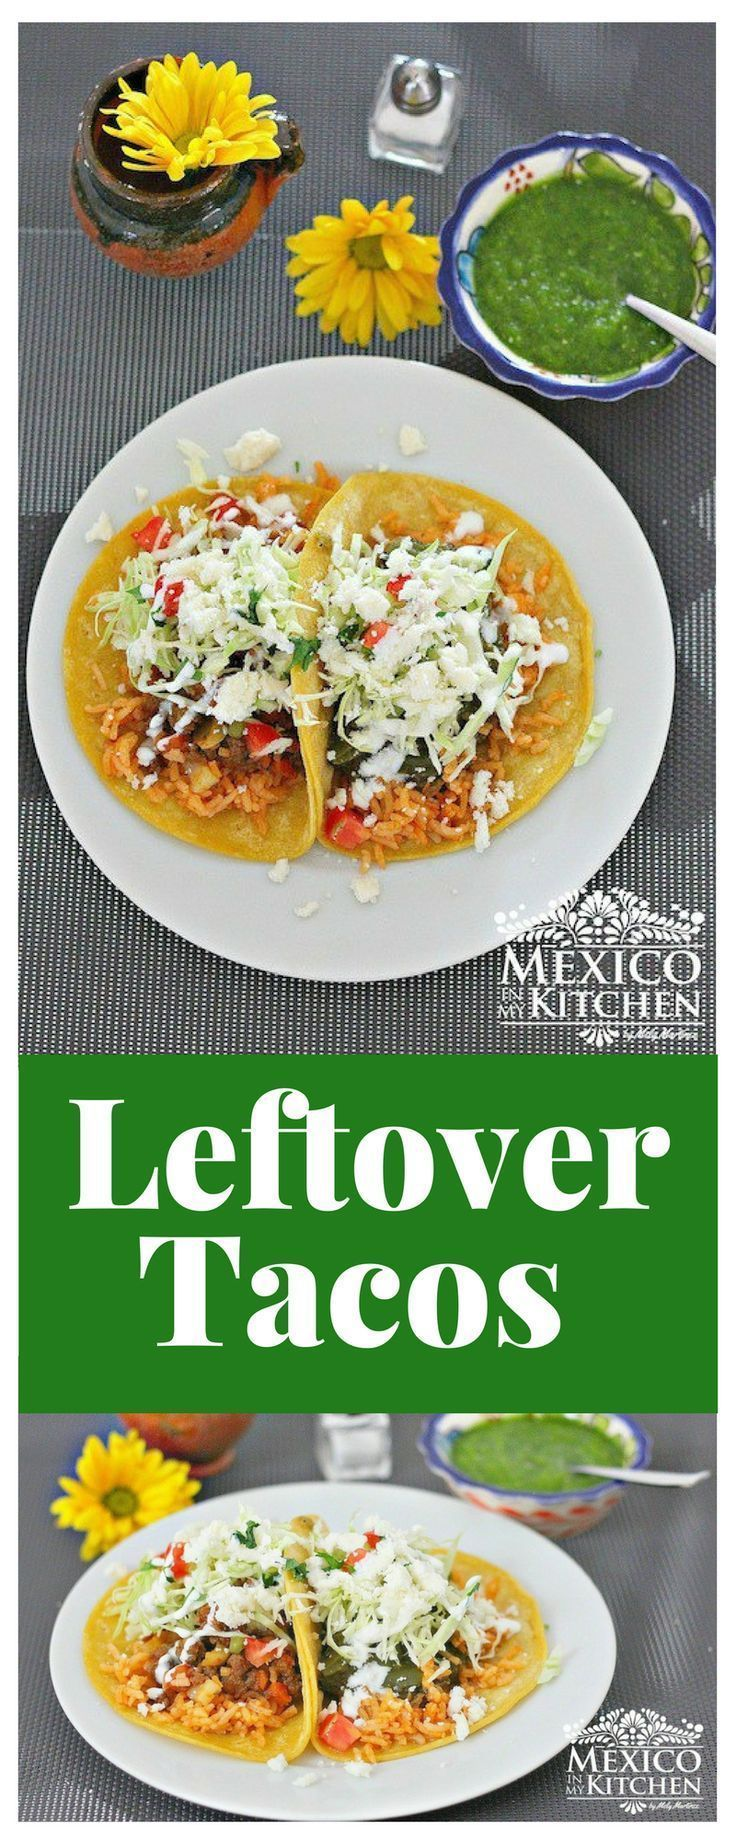 This leftover tacosrecipe is the perfect excuse for you to eat tacos and use those leftovers from yesterday and even the day before. #recipe #mexicanmykitchen #tacos #mexicanfood #kitchen